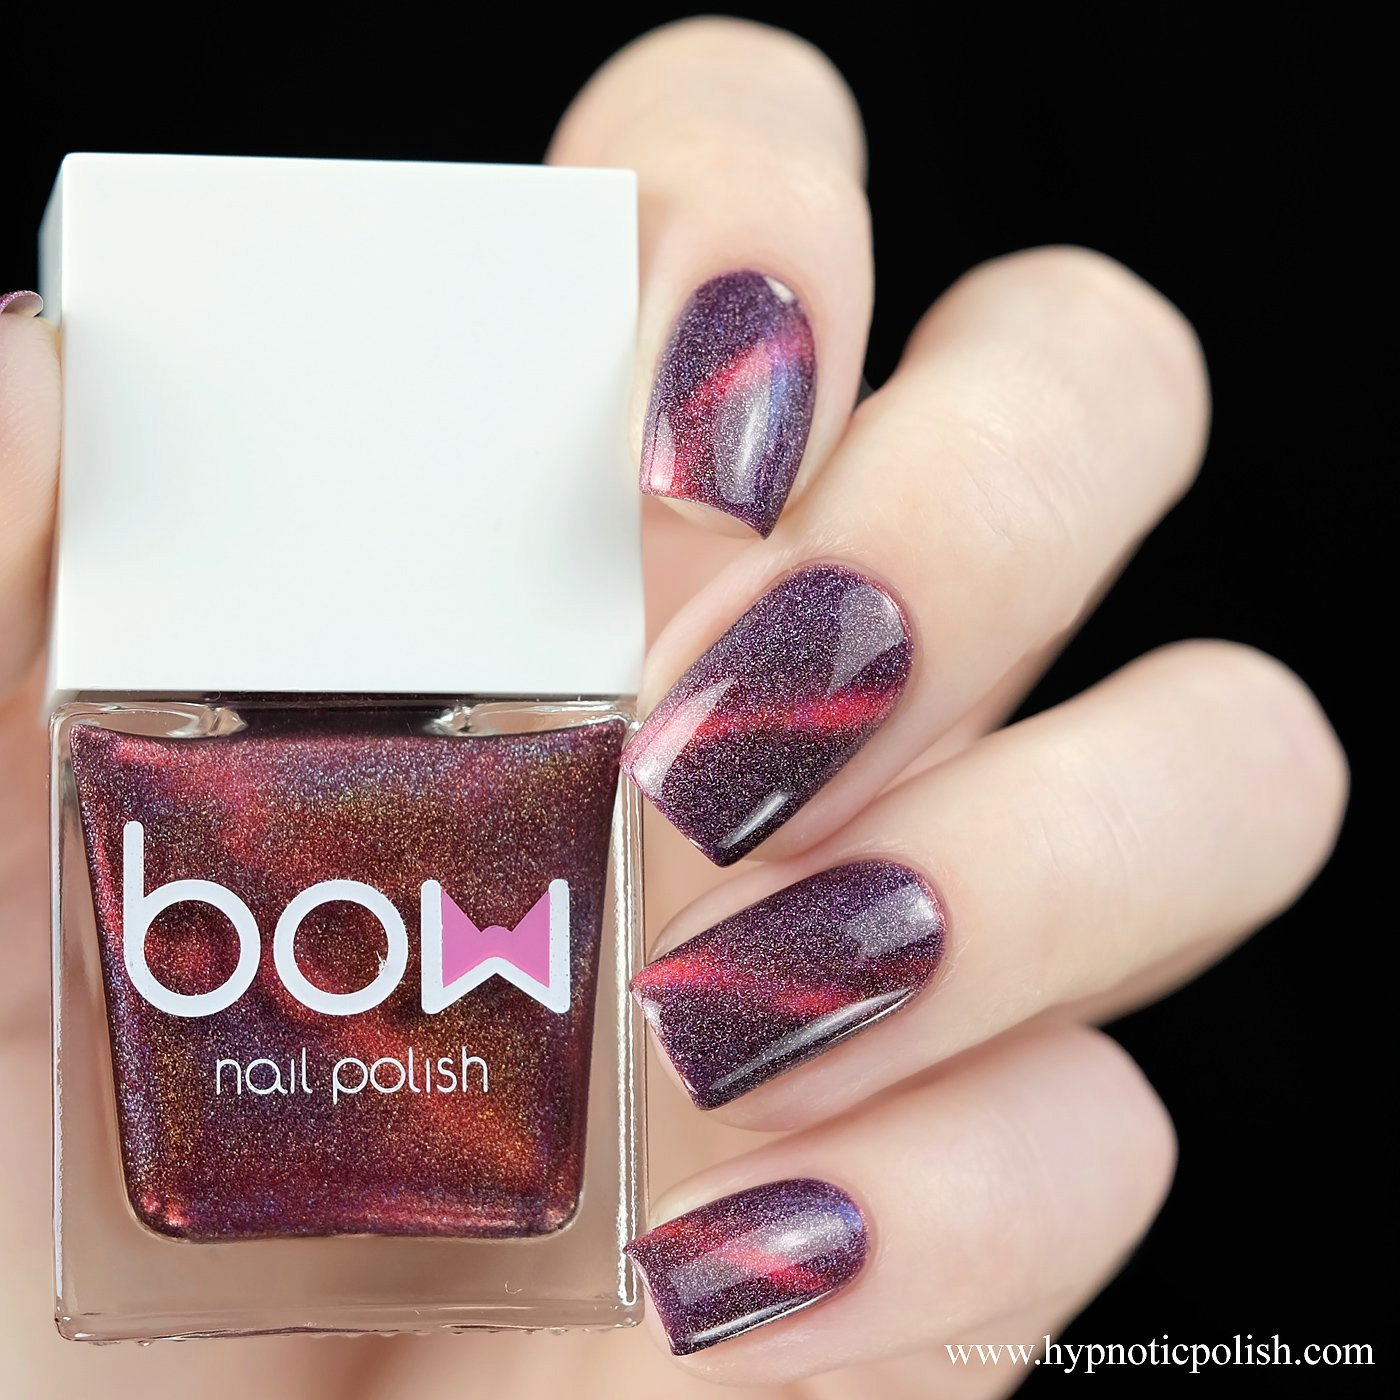 Bow Polish - Magnetic - Feel Real